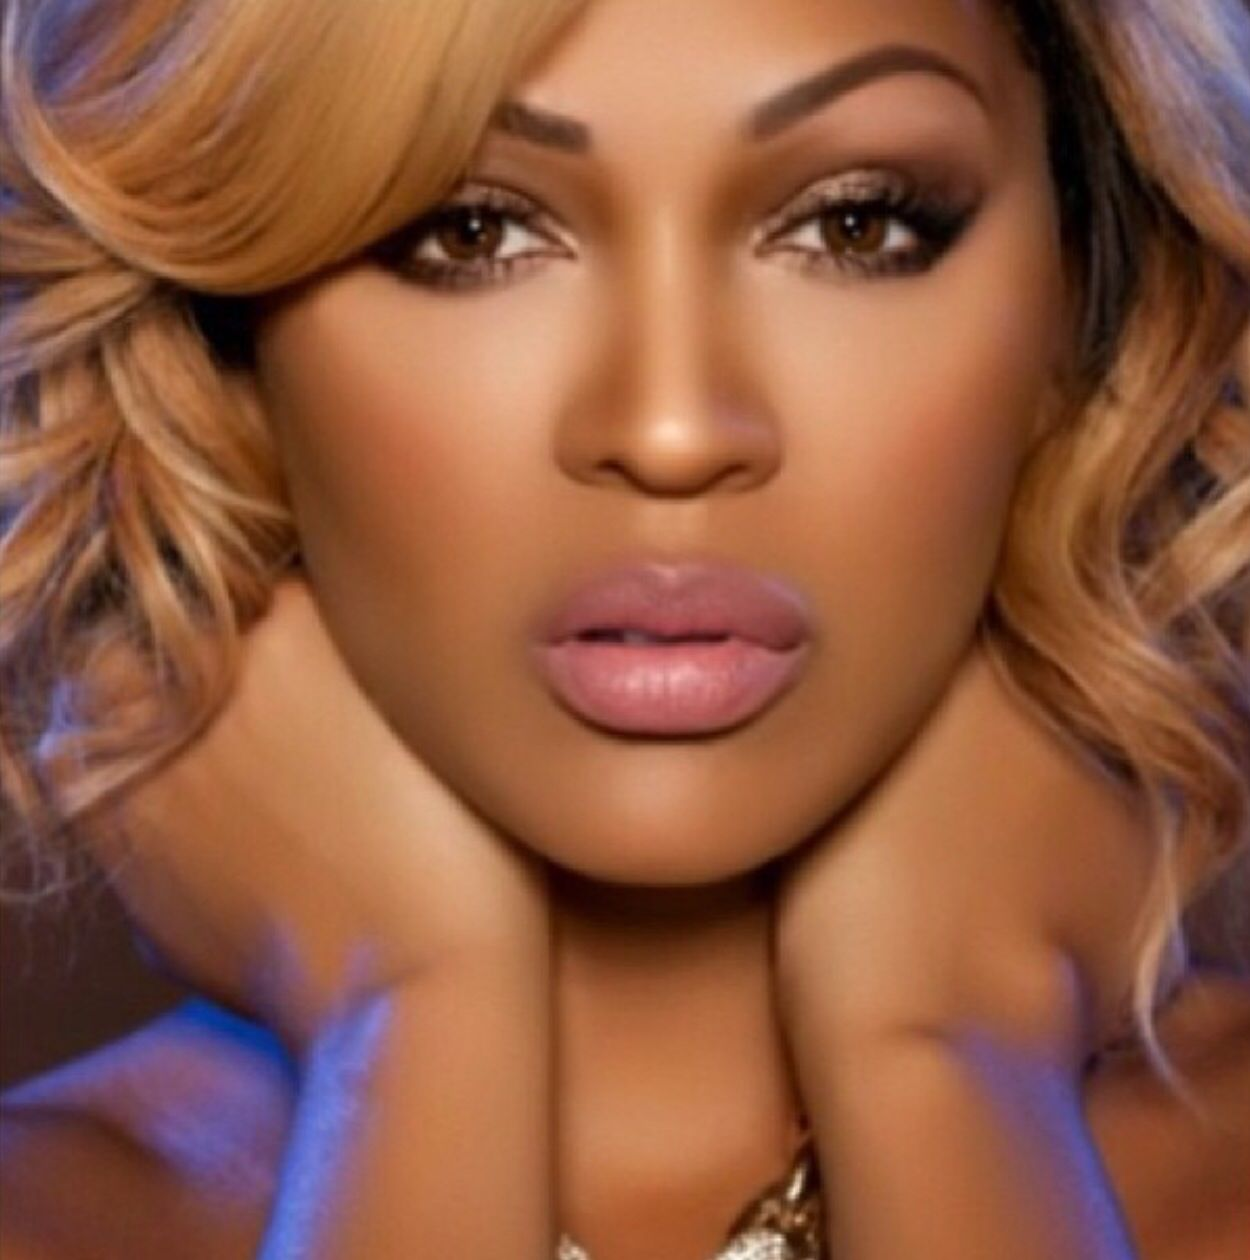 Meagan meagan good her pinterest make up face meagan good added a new photo baditri Images